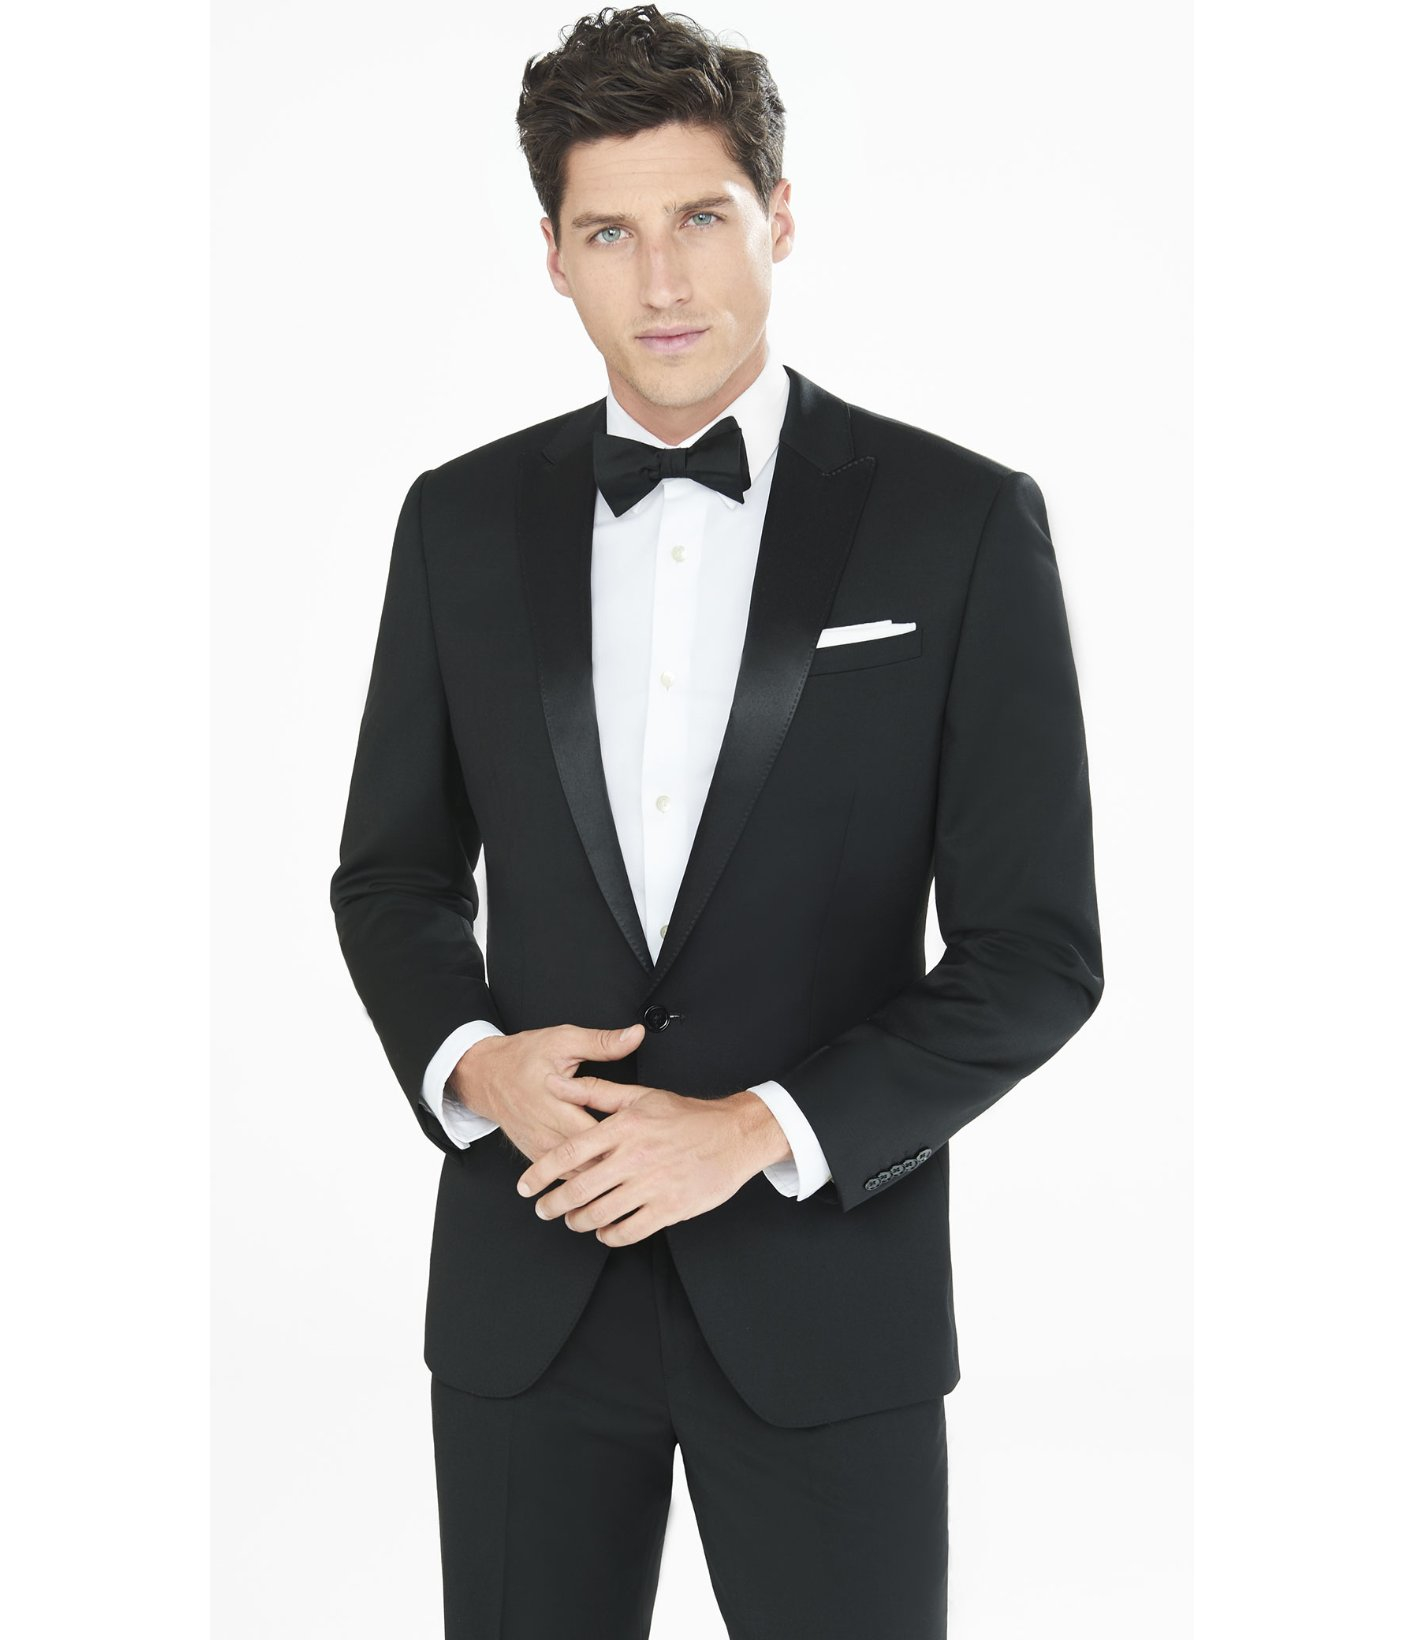 Your dinner jacket can be worn with a dress shirt, high waisted black pants and.